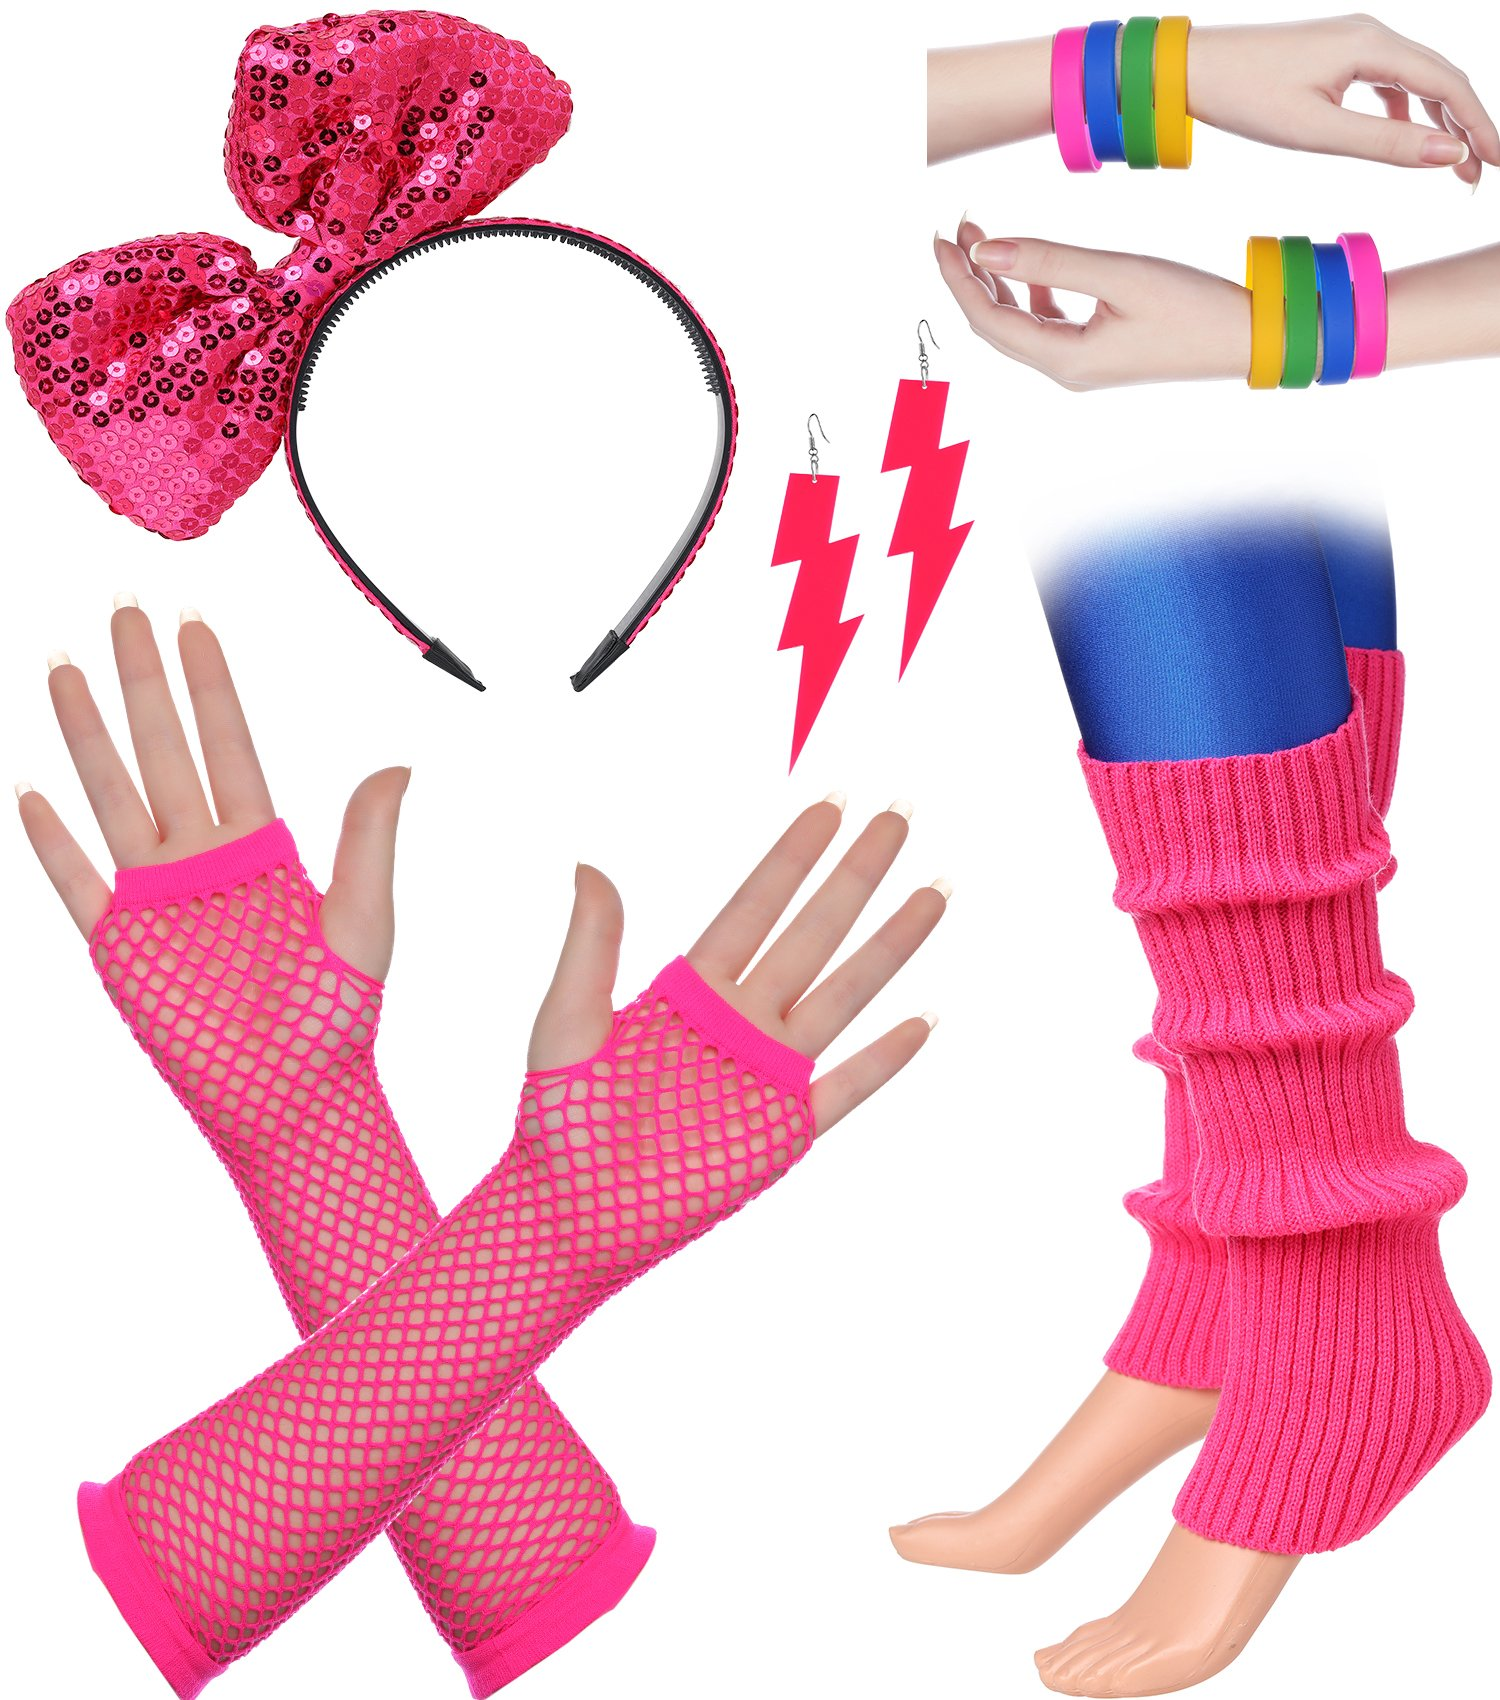 BABEYOND 80s Outfit Costume Accessories Neon Earrings Fishnet Gloves Leg Warmers Headband Bracelets (Set 7) by BABEYOND (Image #1)